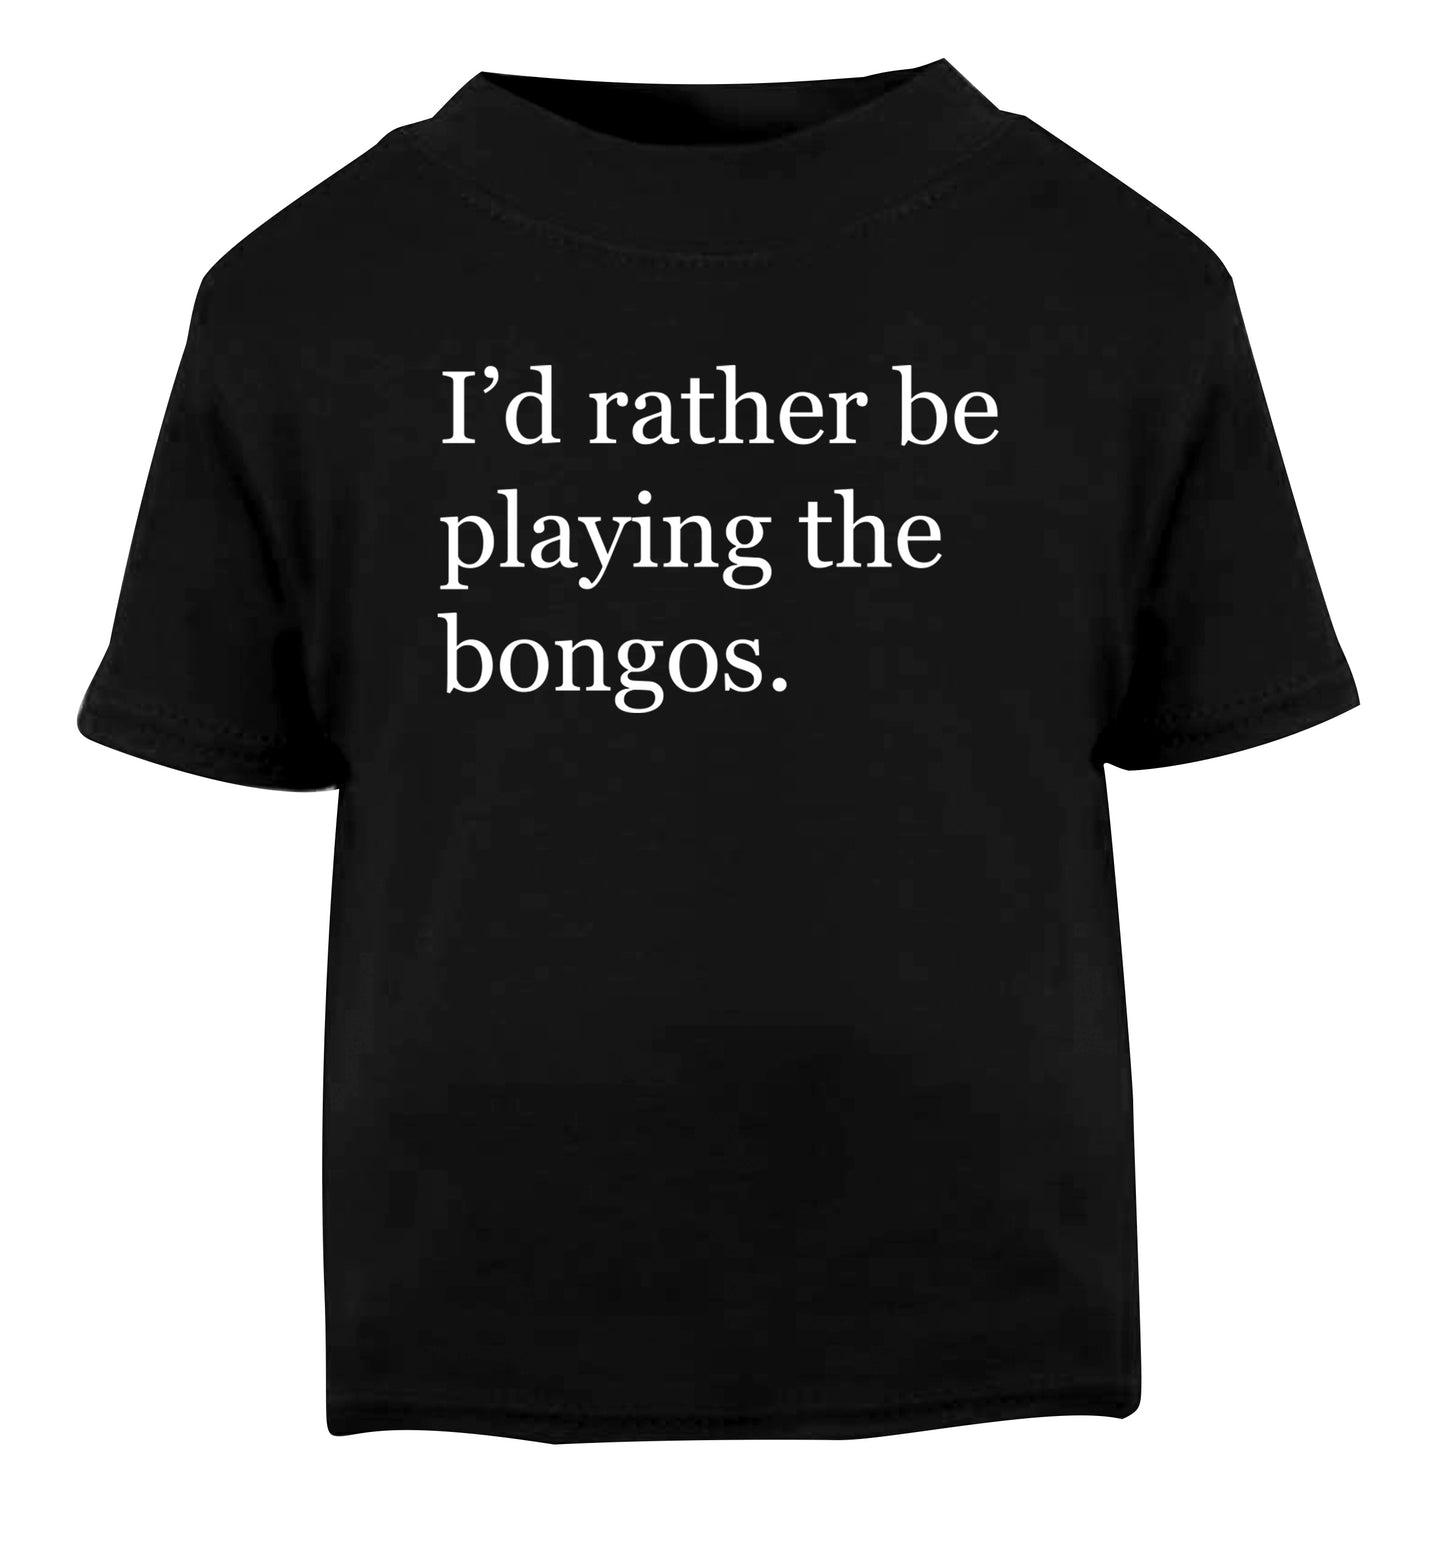 I'd rather be playing the bongos Black Baby Toddler Tshirt 2 years